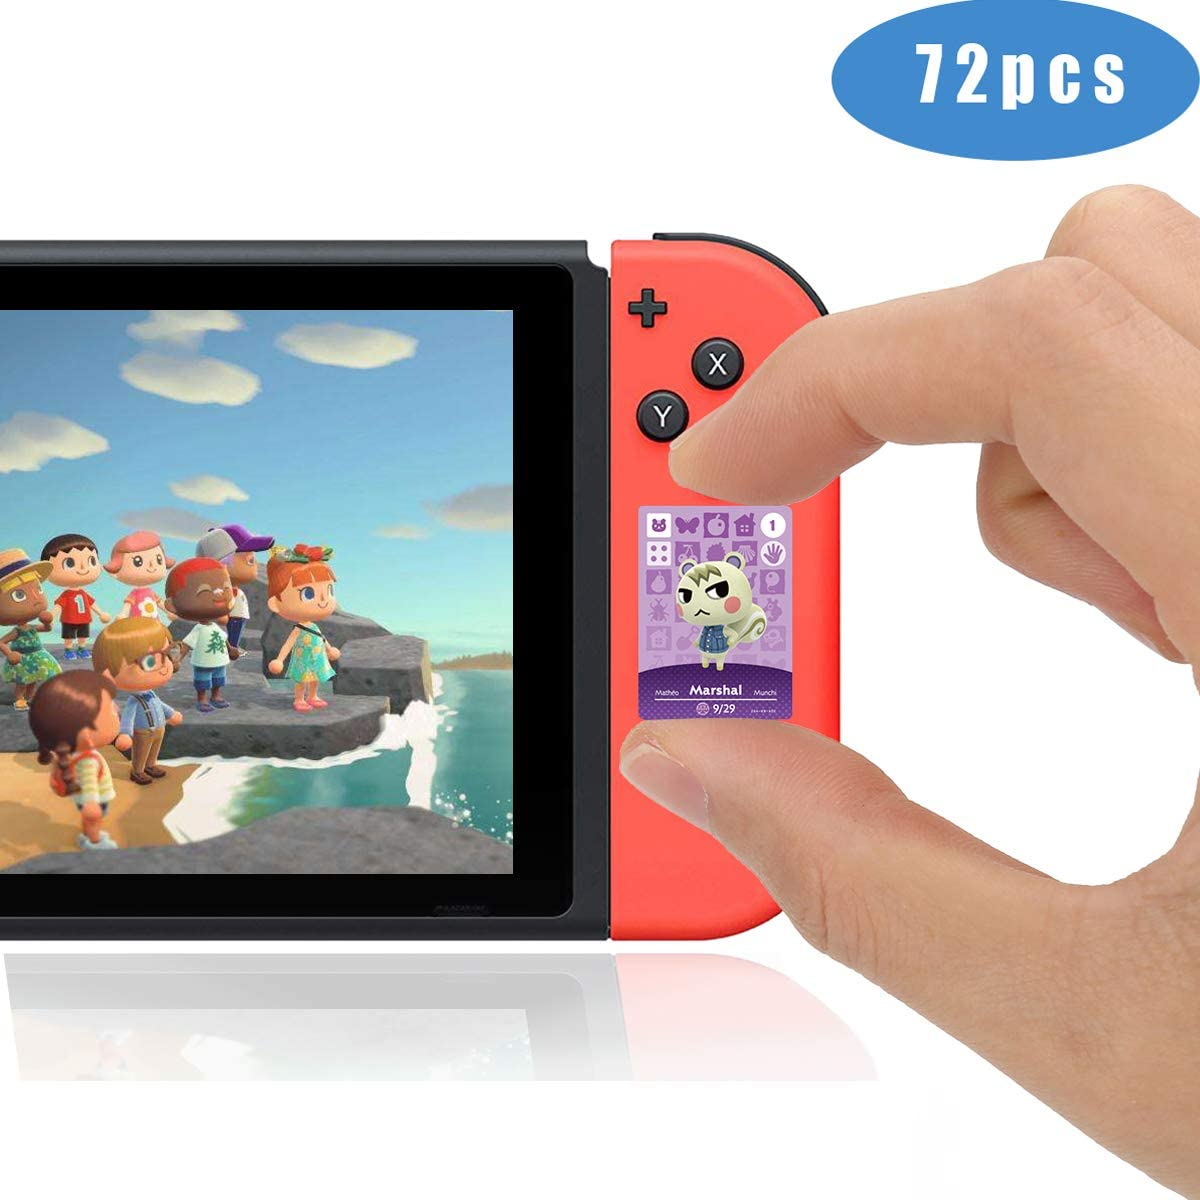 ACNH 72 PCS Rare Character Villager Cards NFC Tag Game Cards for Switch/Switch Lite/Wii U with Crystal Storage Box